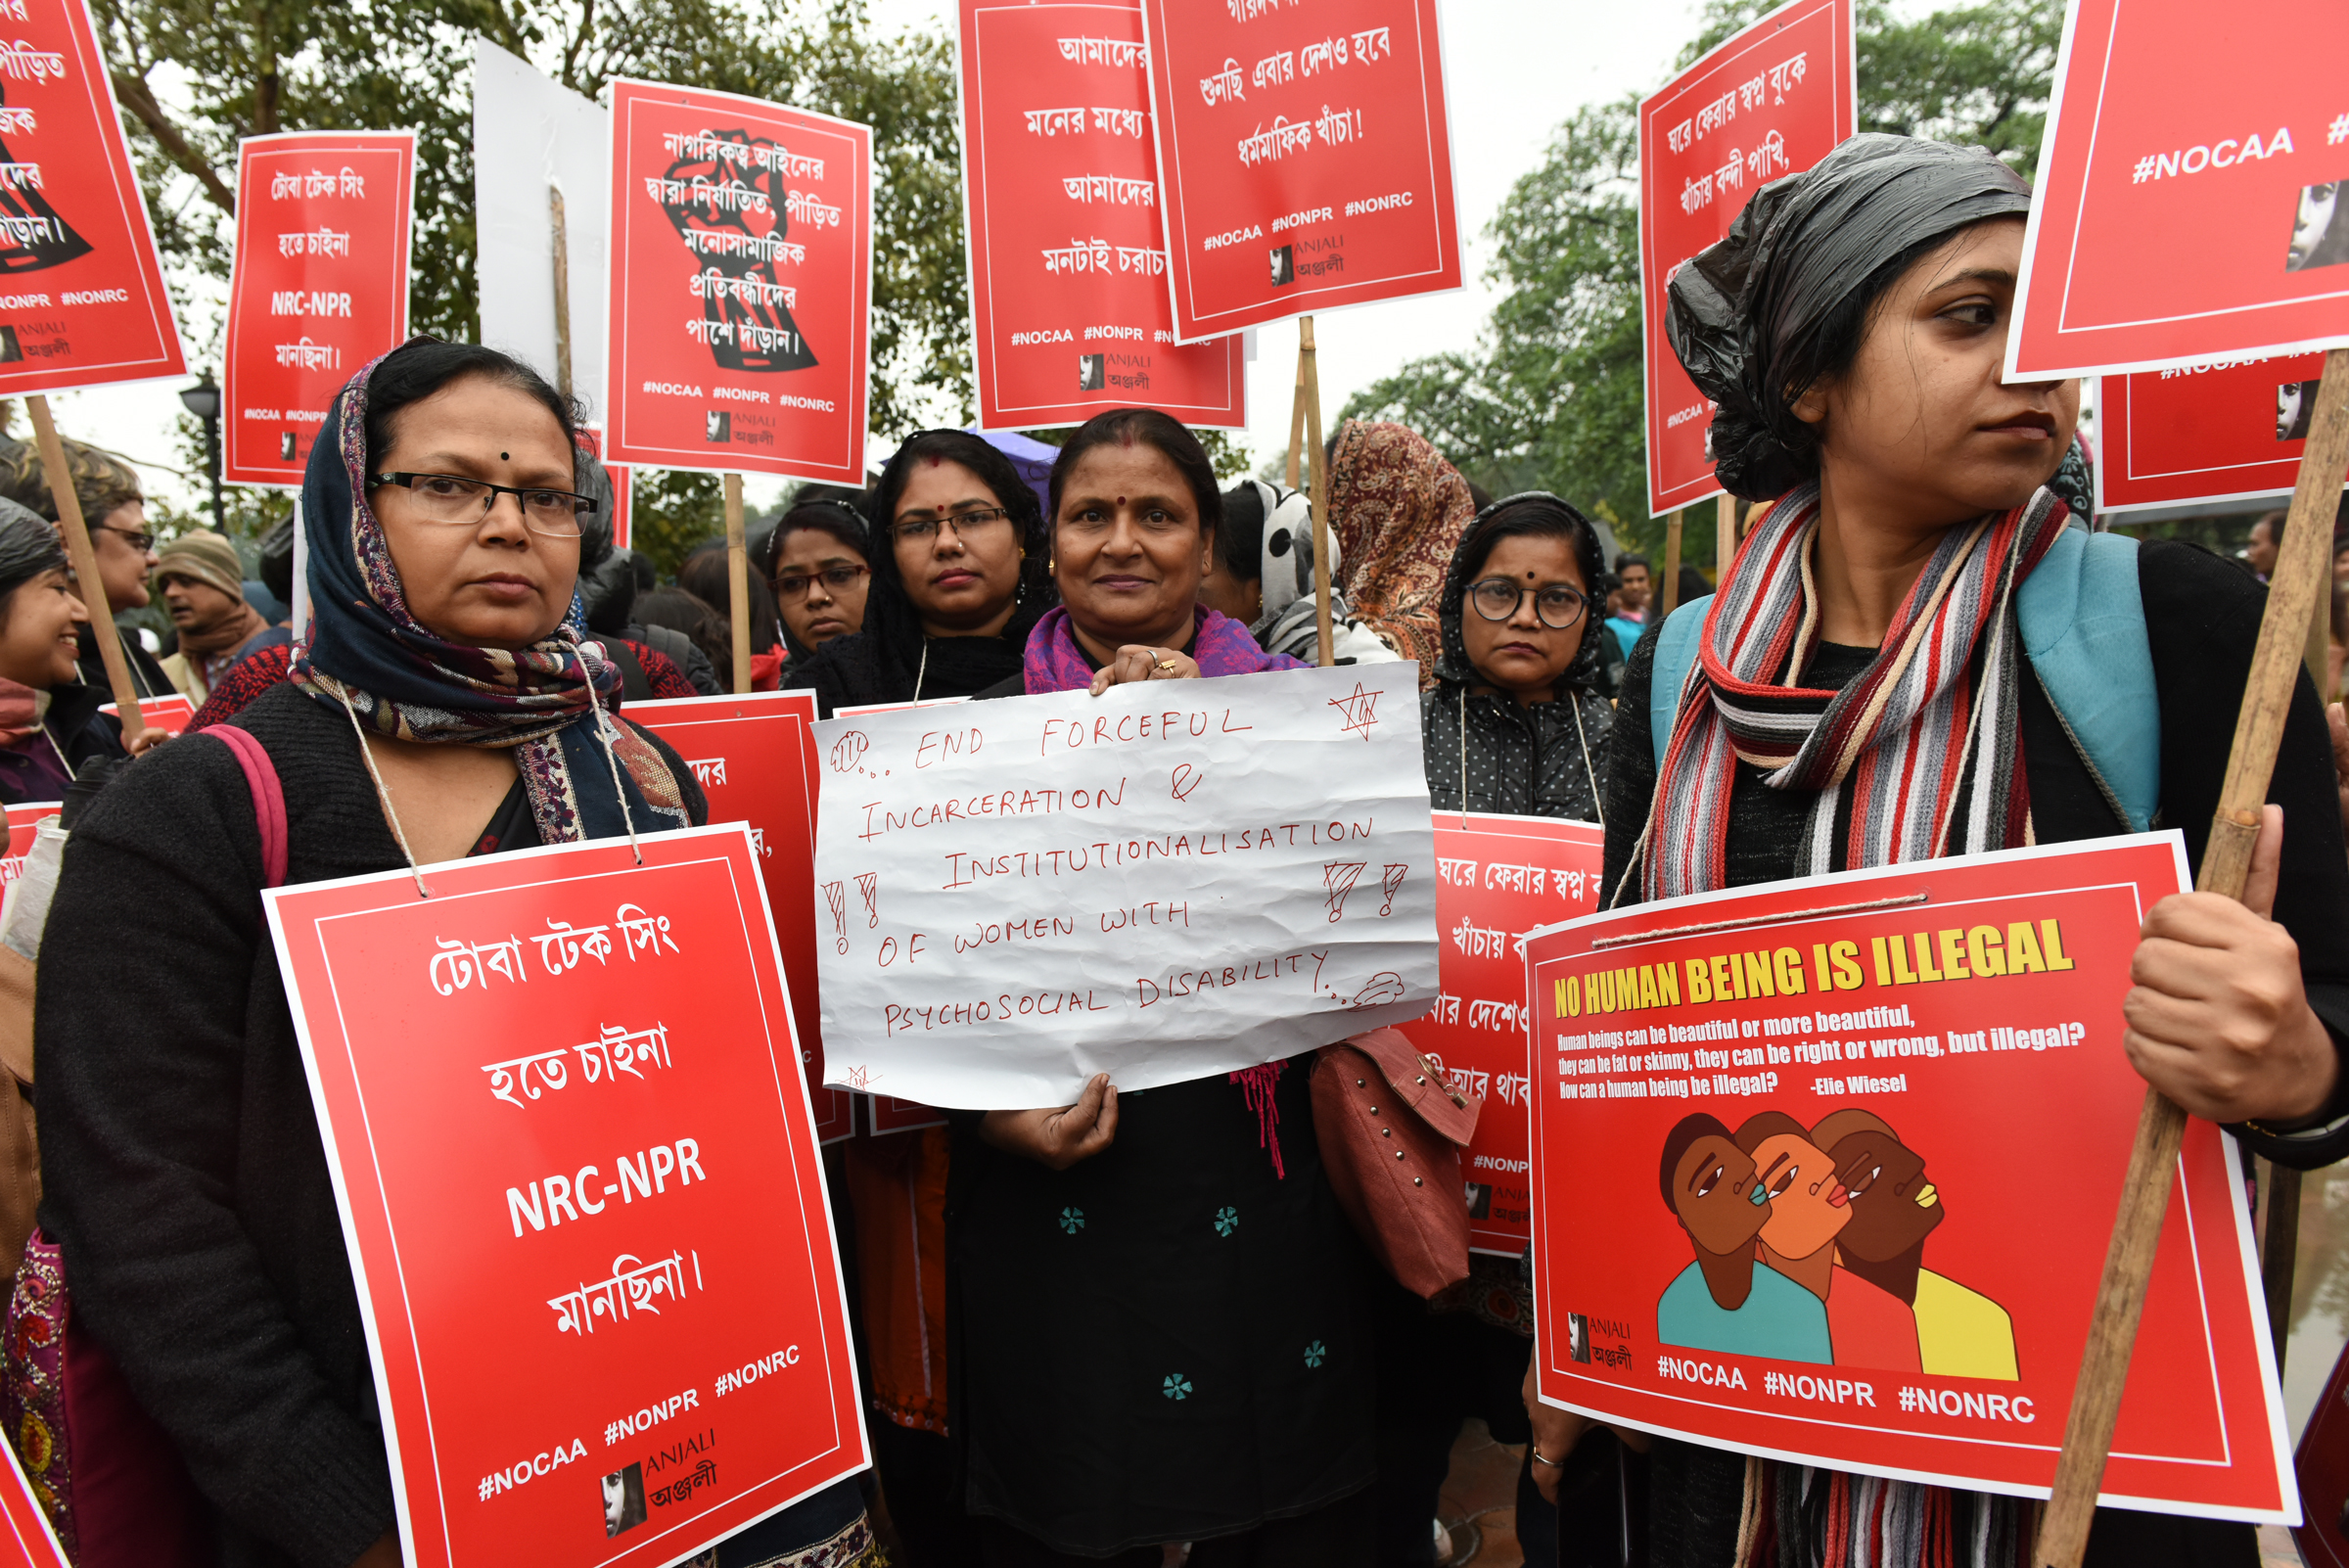 a group of Indian women protestors hold burgundy signs that reflect their protest